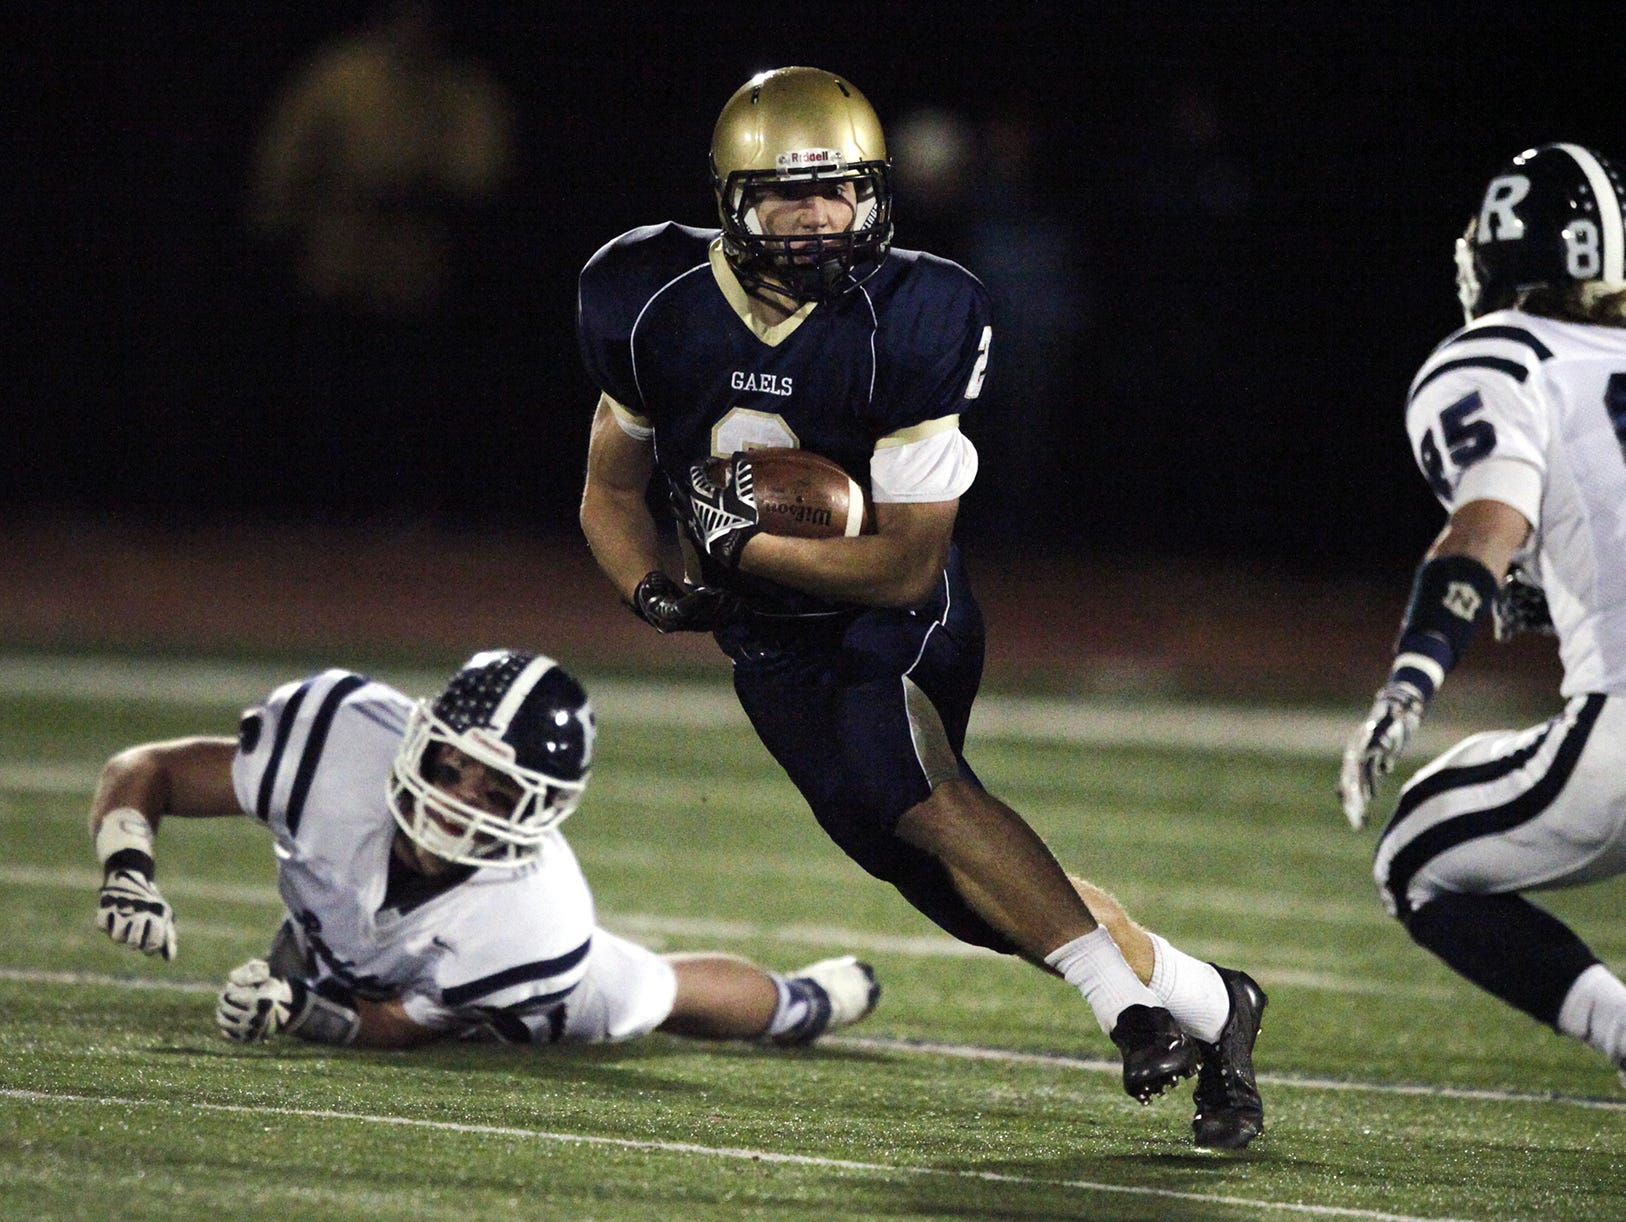 Roxbury's Jack Clevenger (2) tries to run around a defender in a game last fall.